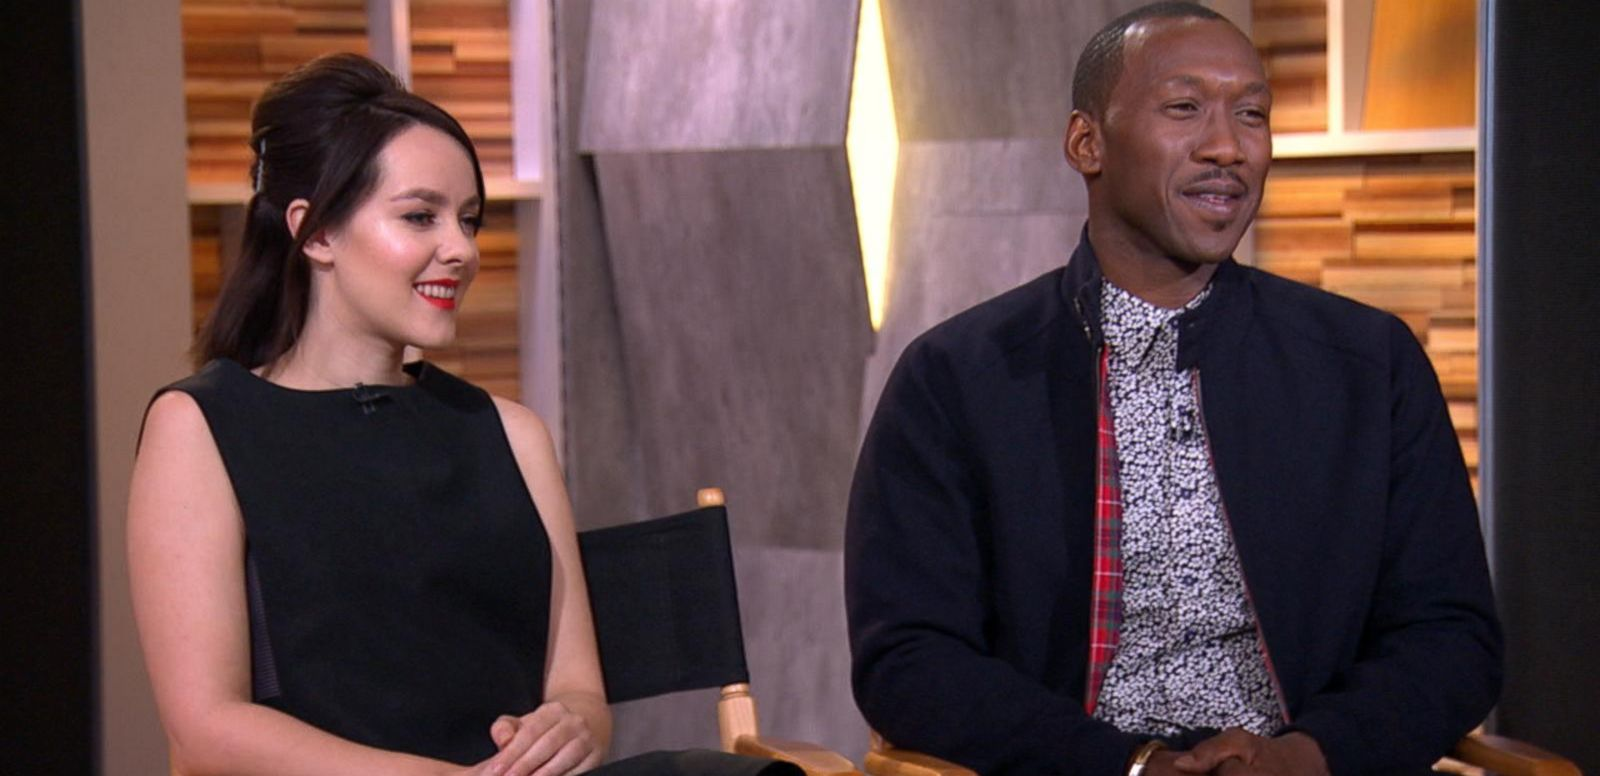 VIDEO: One-on-One With the Stars of 'The Hunger Games'